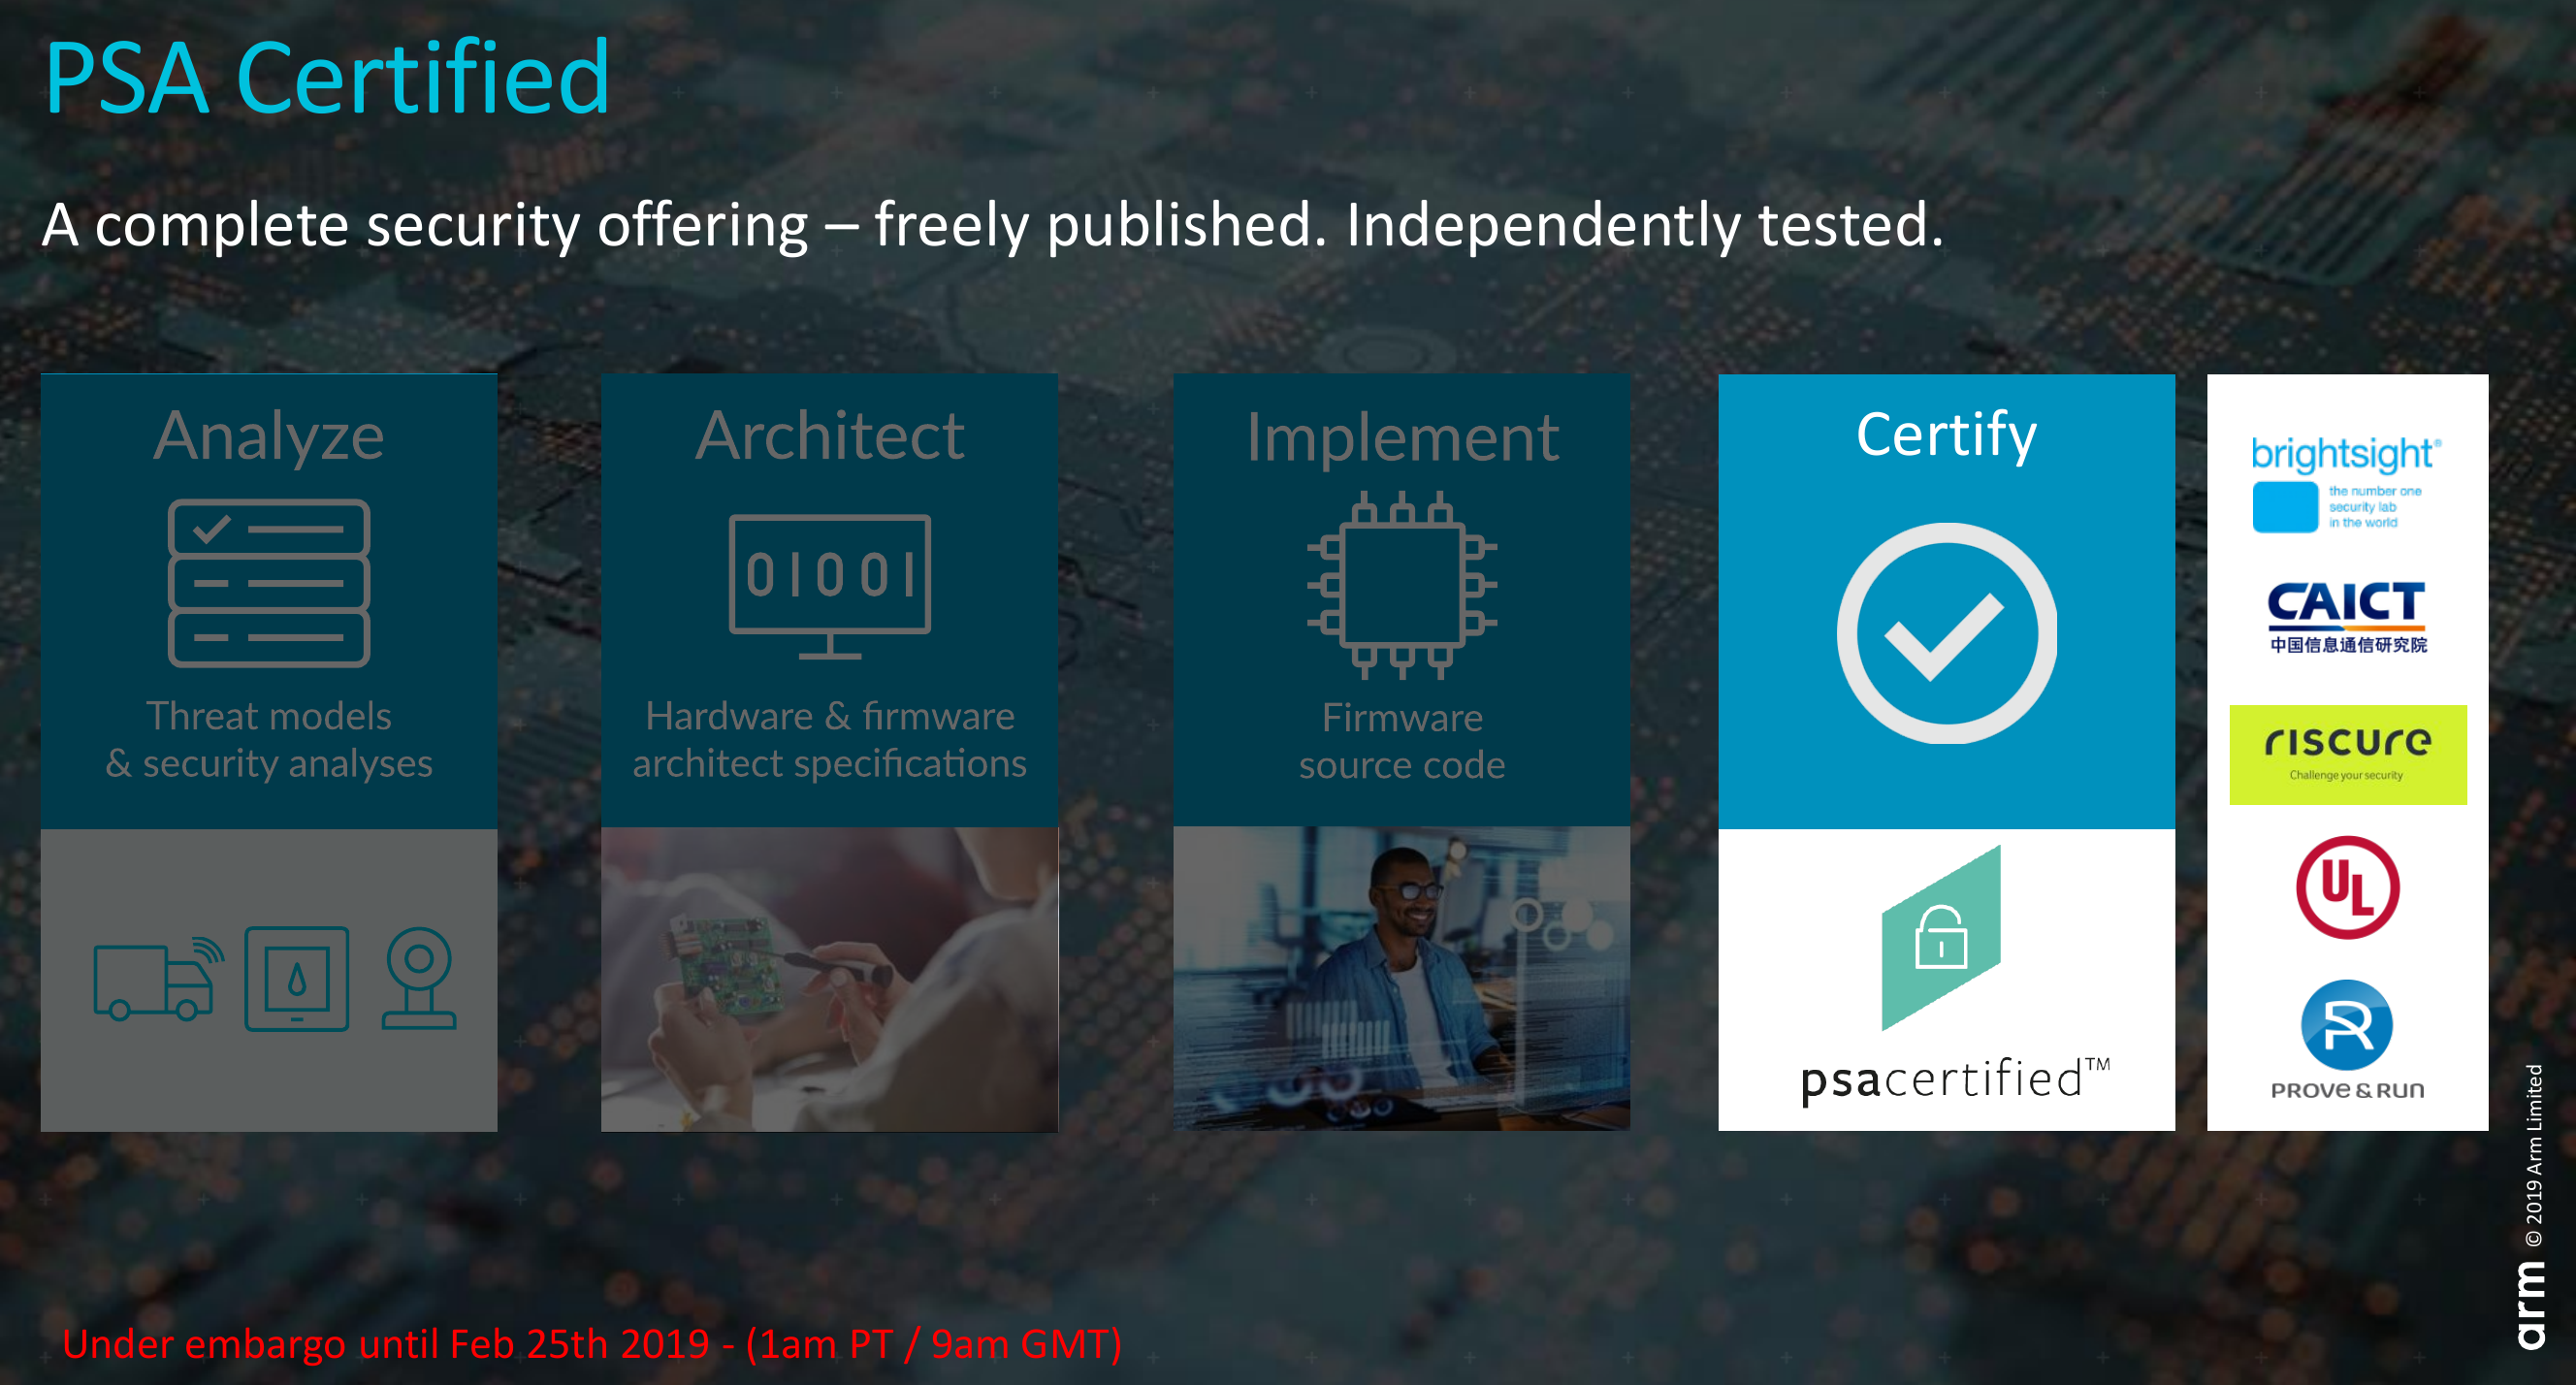 arm psa certification program security announces iot devices wikichip fuse number enablement prove brightsight broadest riscure certifications ul ensure include